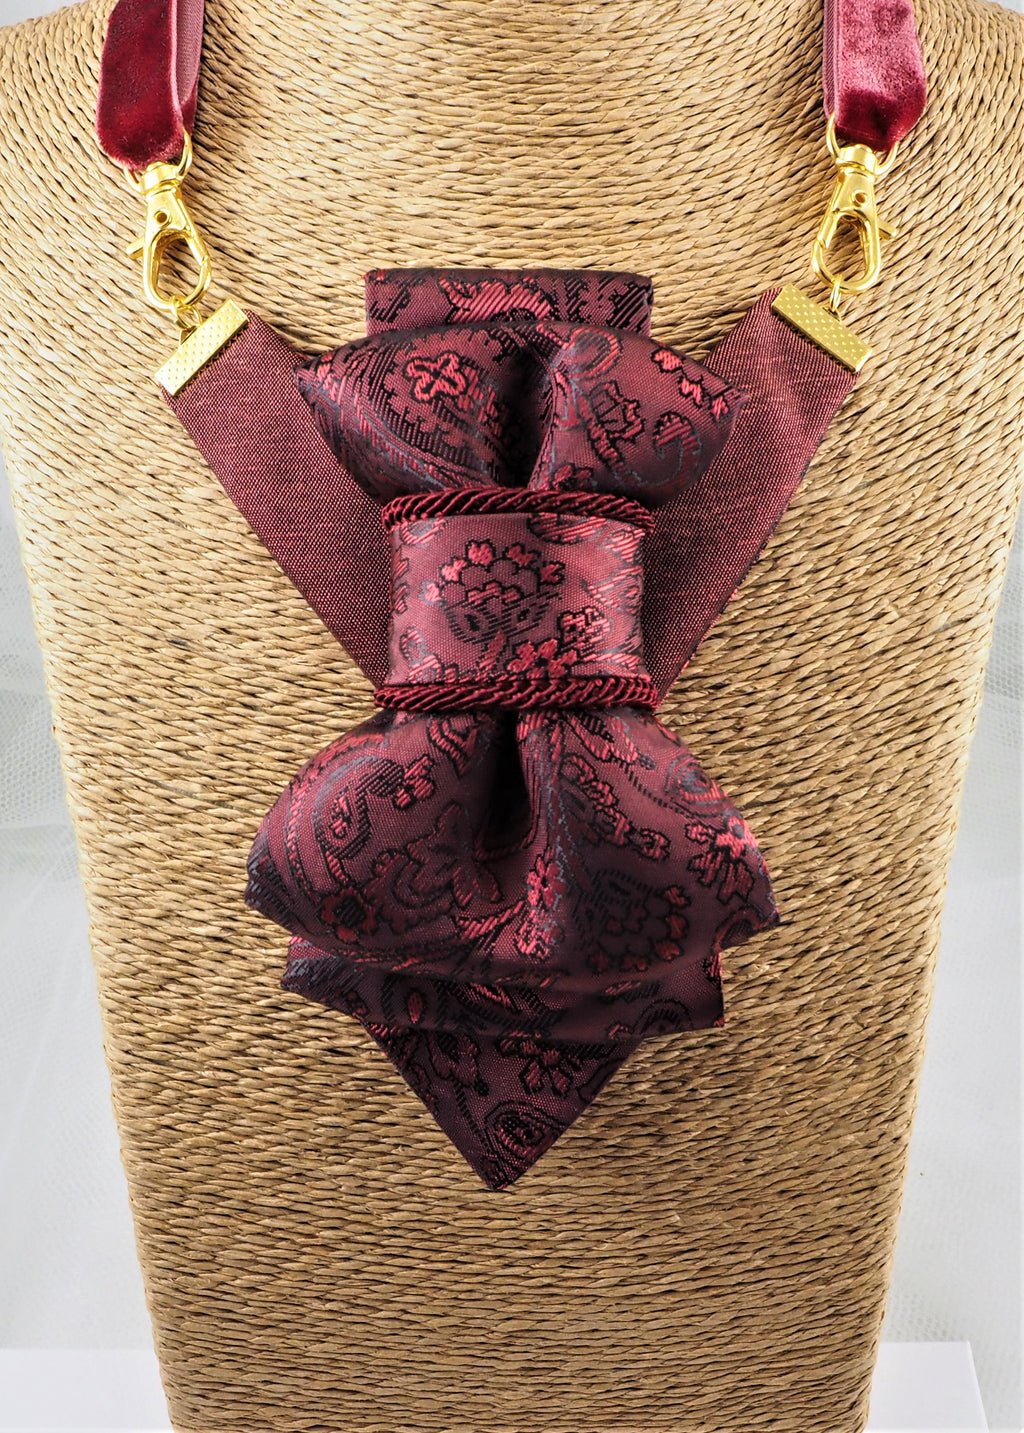 Bow Tie, Tie for wedding suite ROSE WINE hopper tie Bow tie